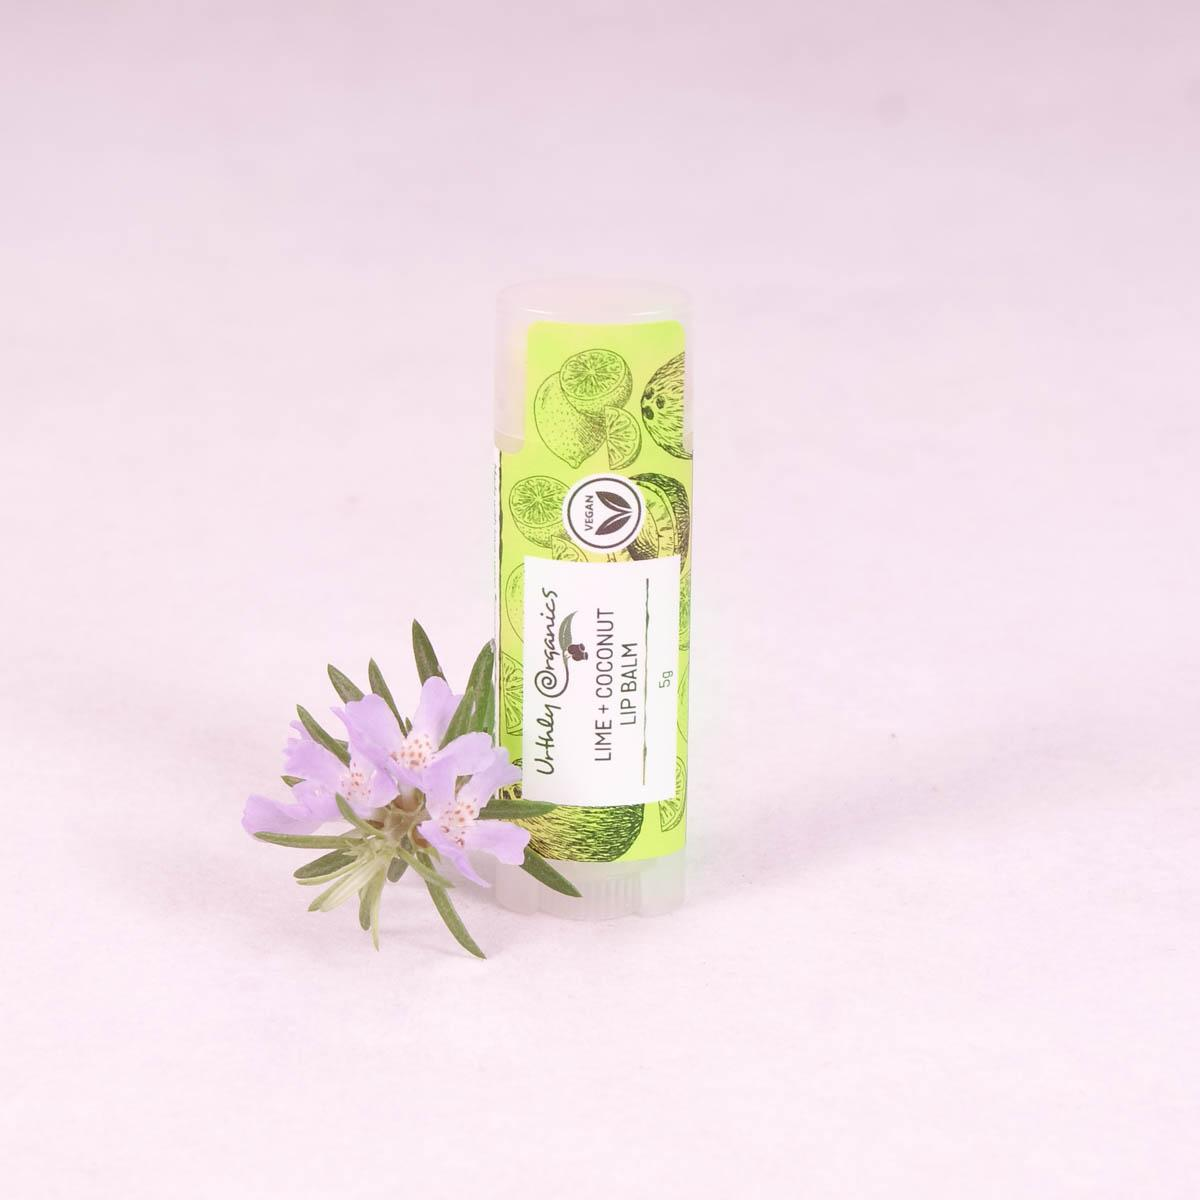 Lime and Coconut Lip Balm 5g - Urthly Organics